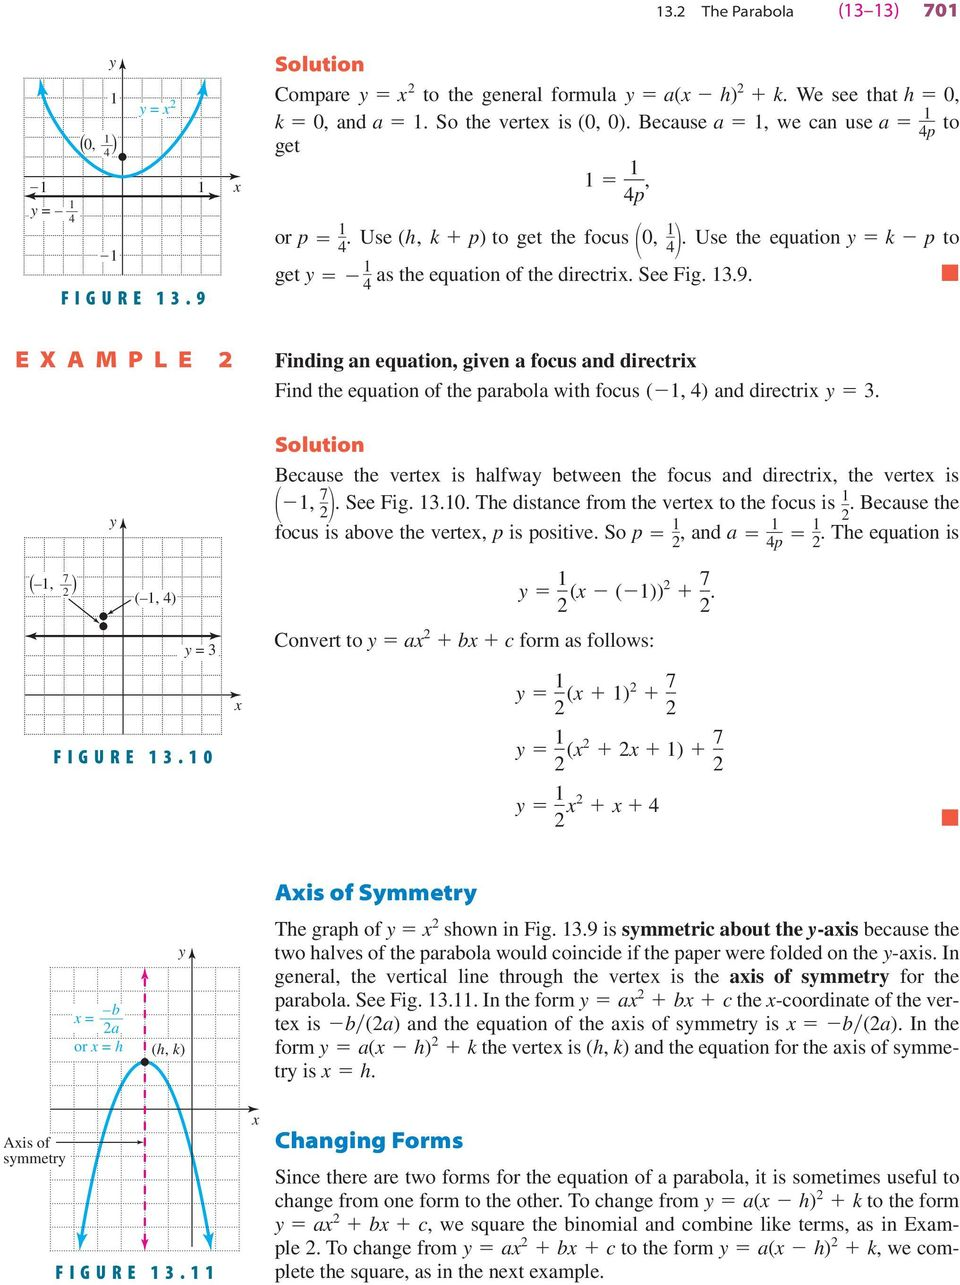 4 E X A M P L E 2 Finding an equation, given a focus and directri Find the equation of the parabola with focus (, 4) and directri 3.